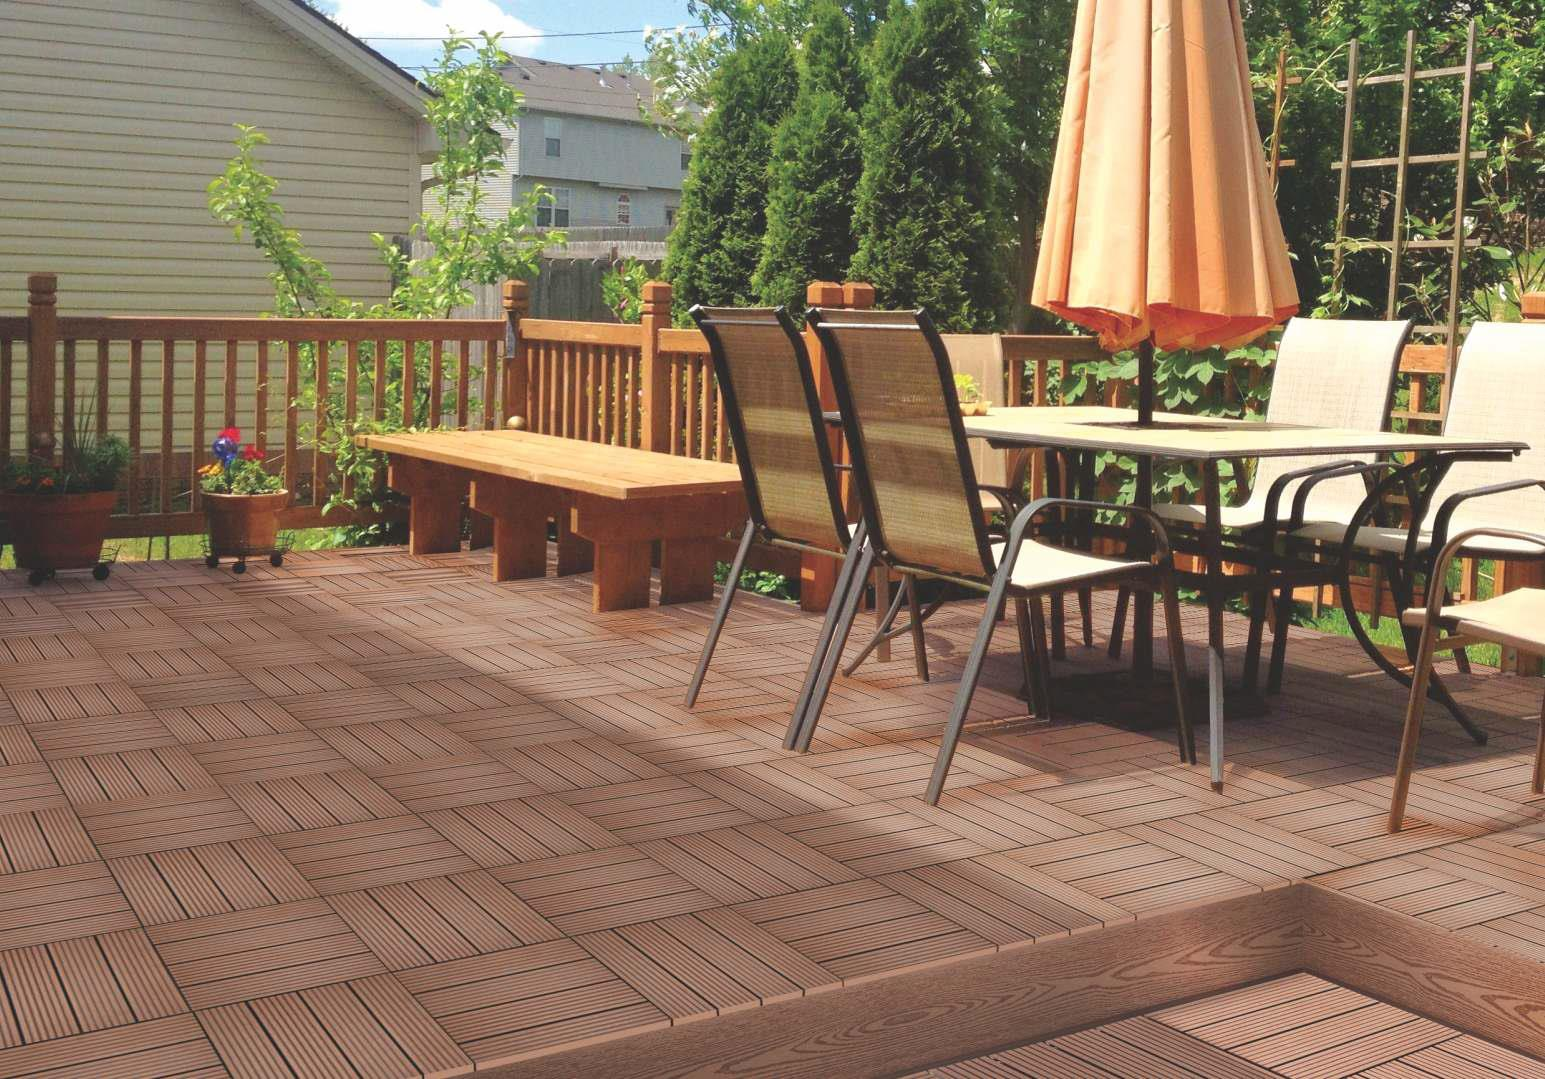 Floor Tiles Composite Deck Tiles Deck Flooring Materials